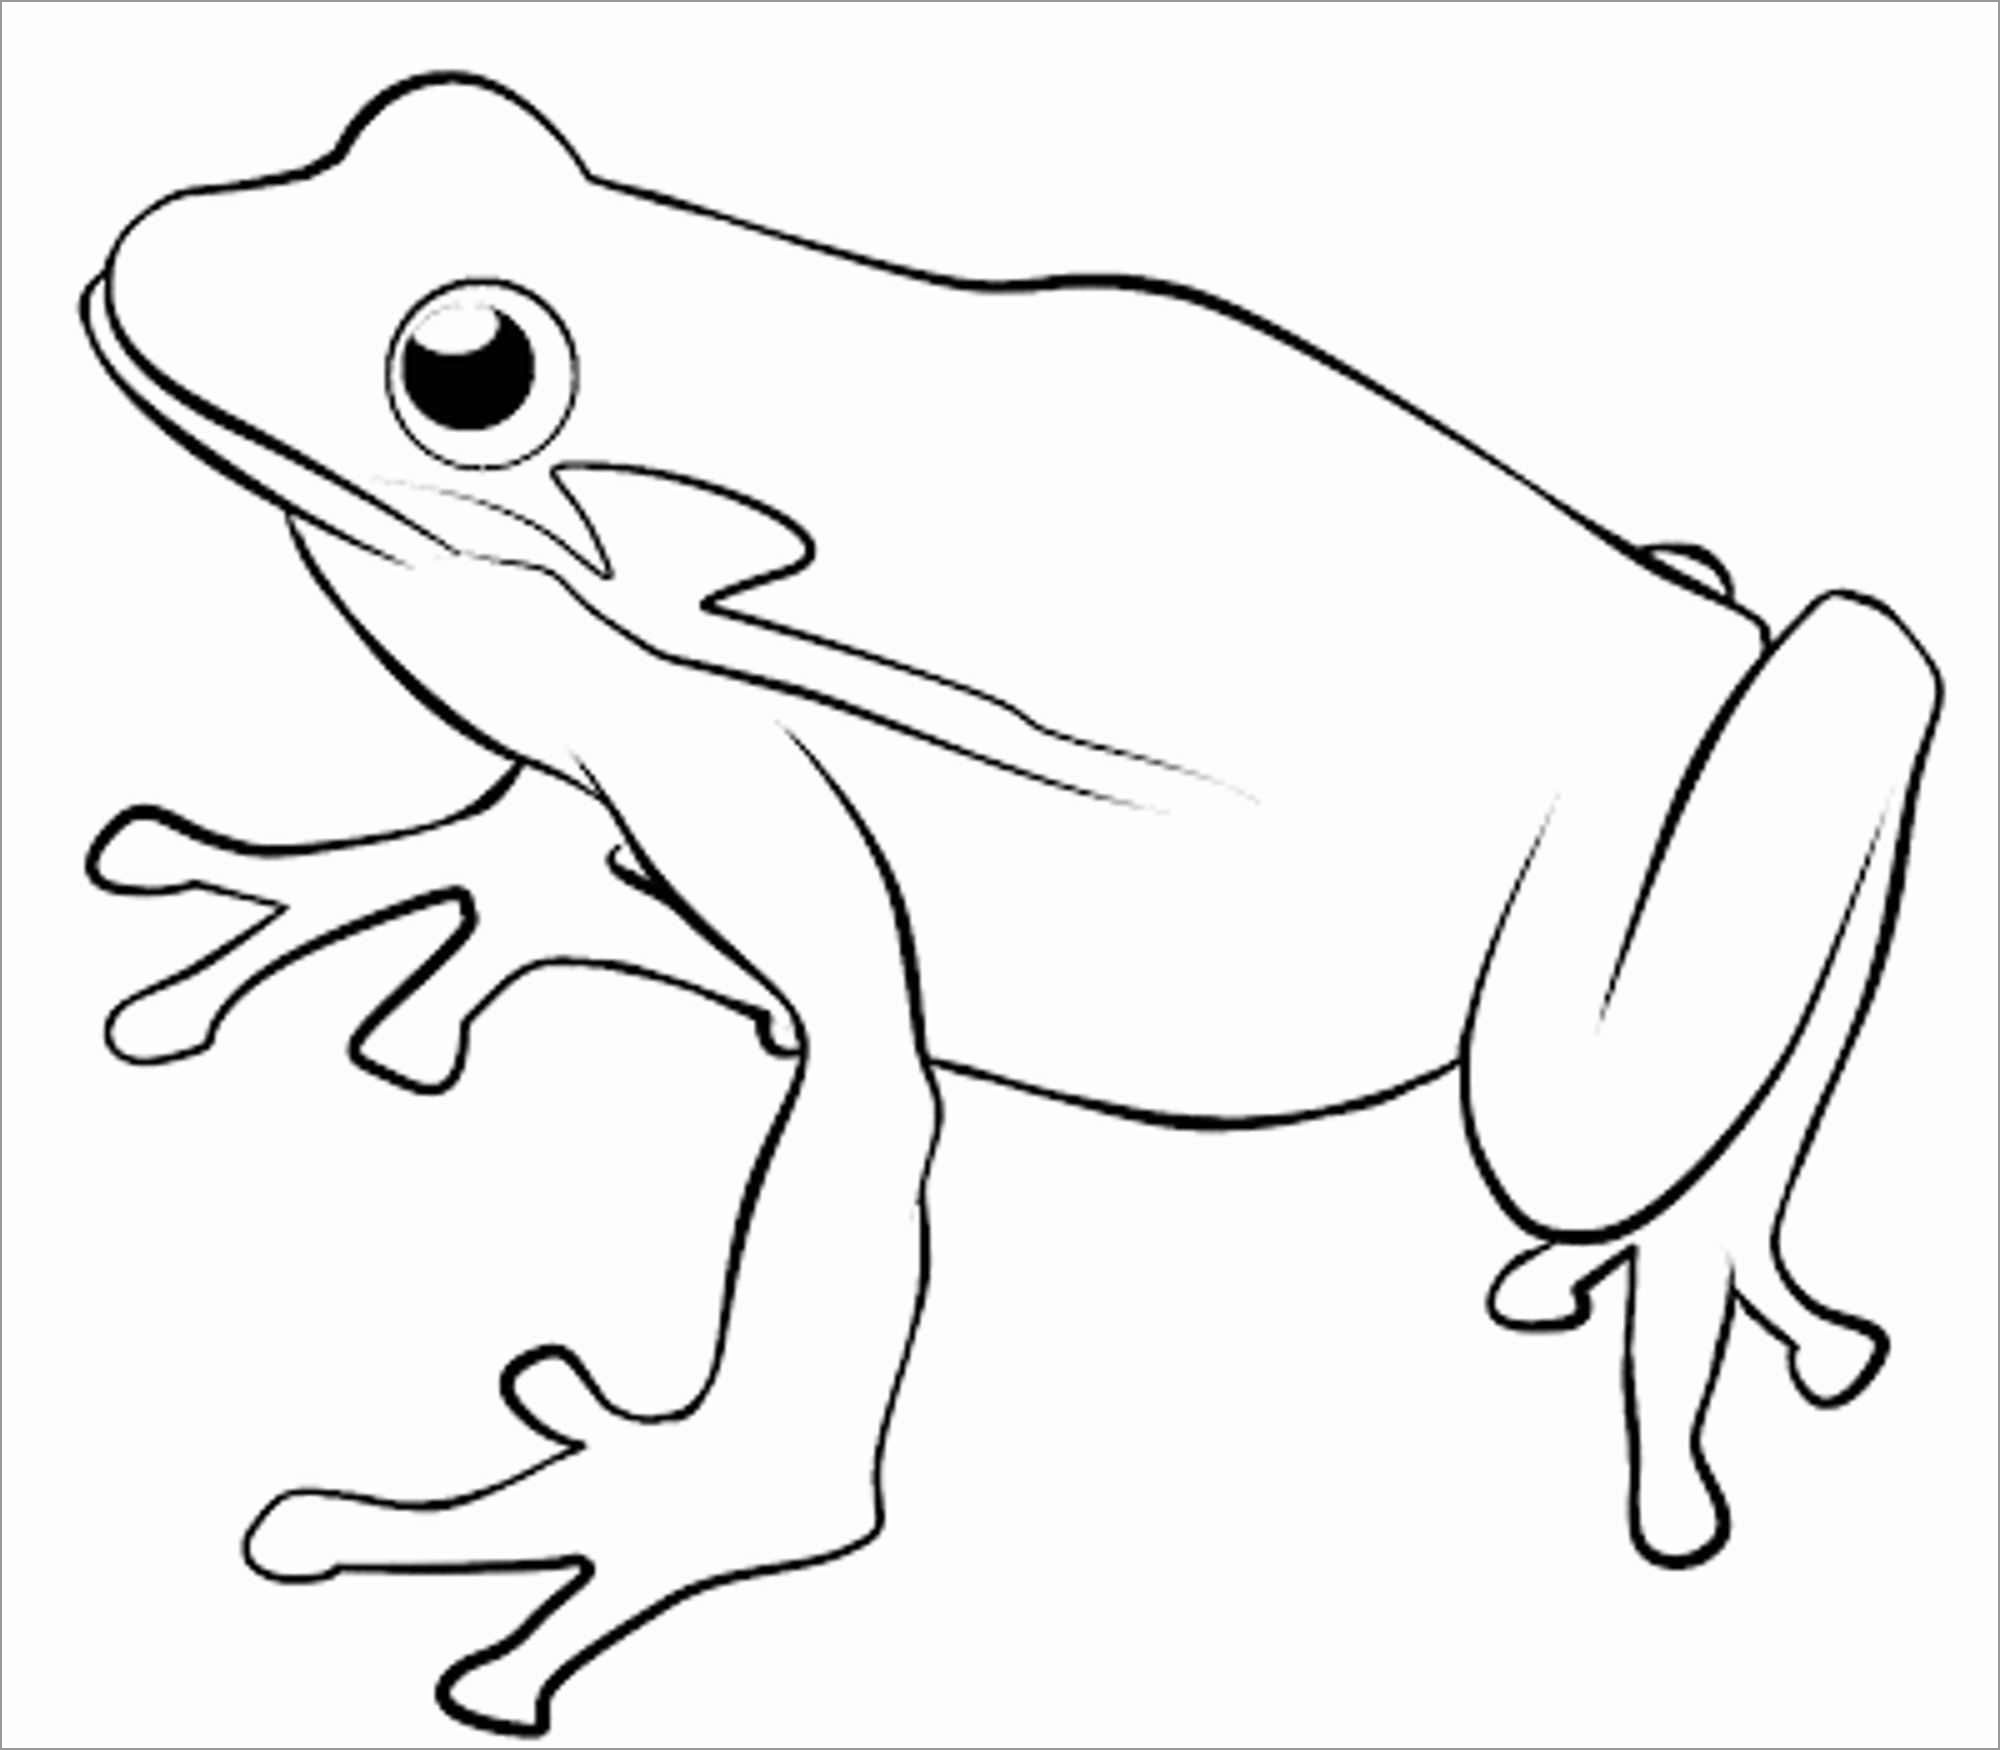 Toad Coloring Page to Print